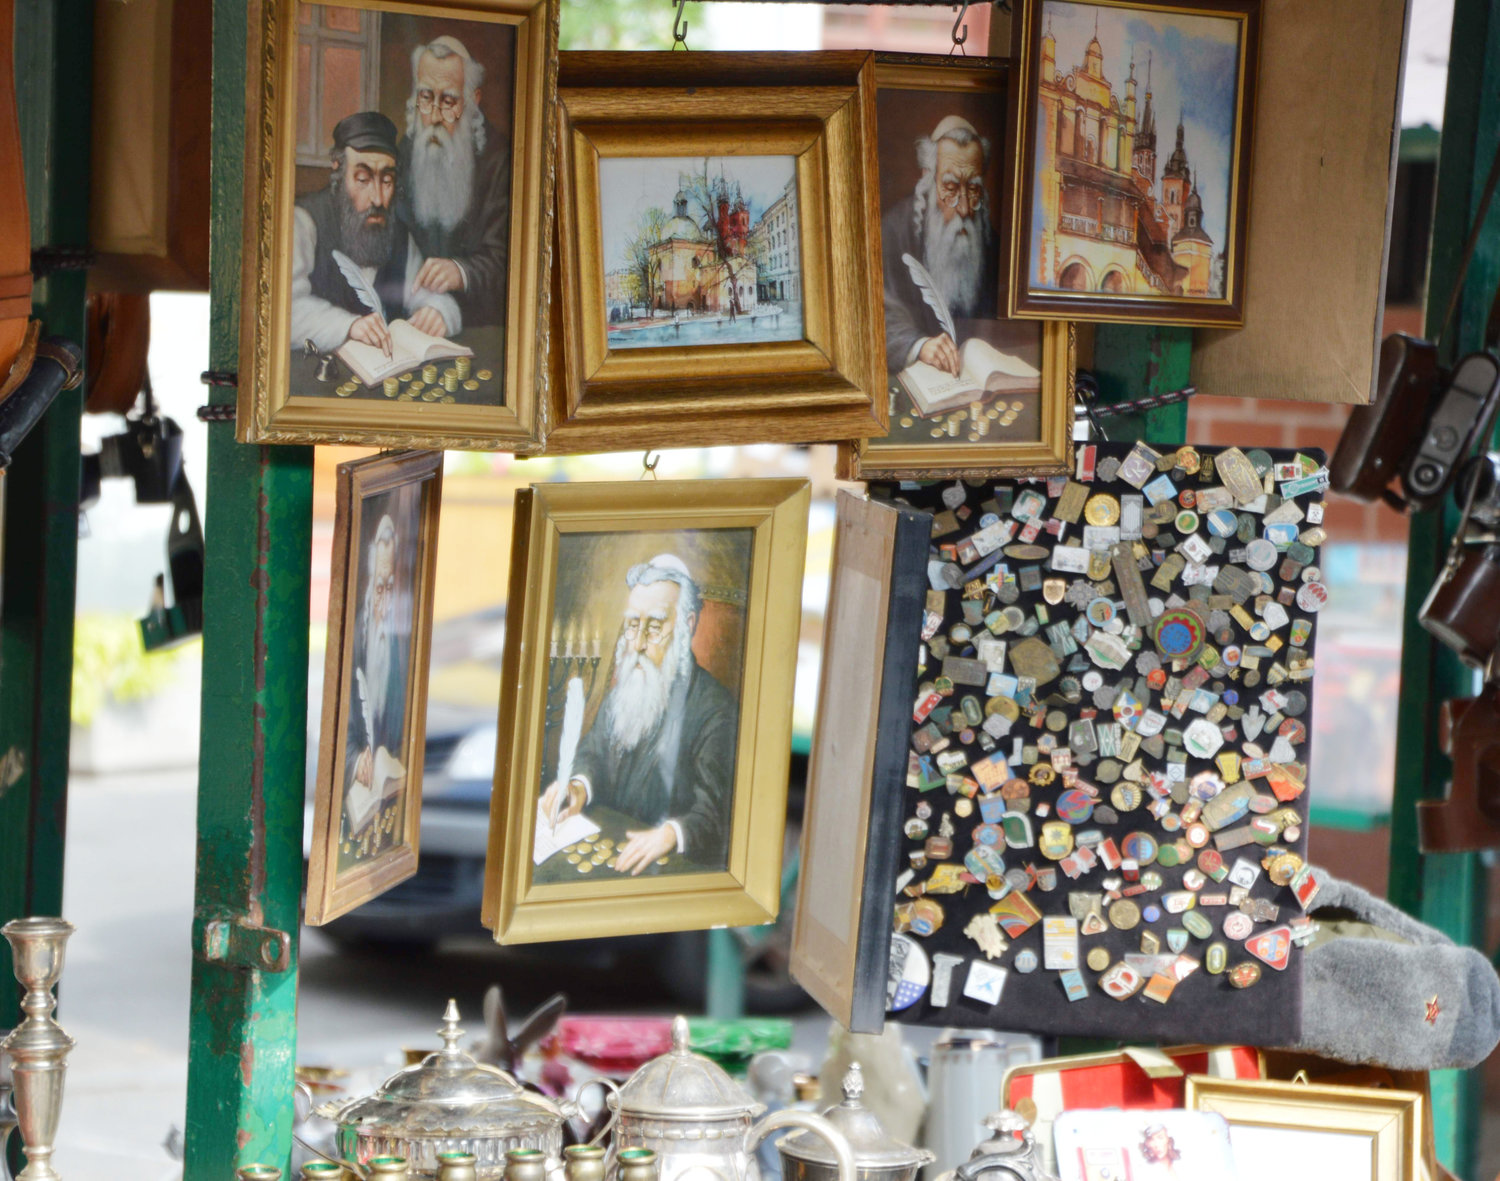 Lucky Jew pictures and other souvenirs for sale at Plac Nowy in the former Jewish district of Krakow.